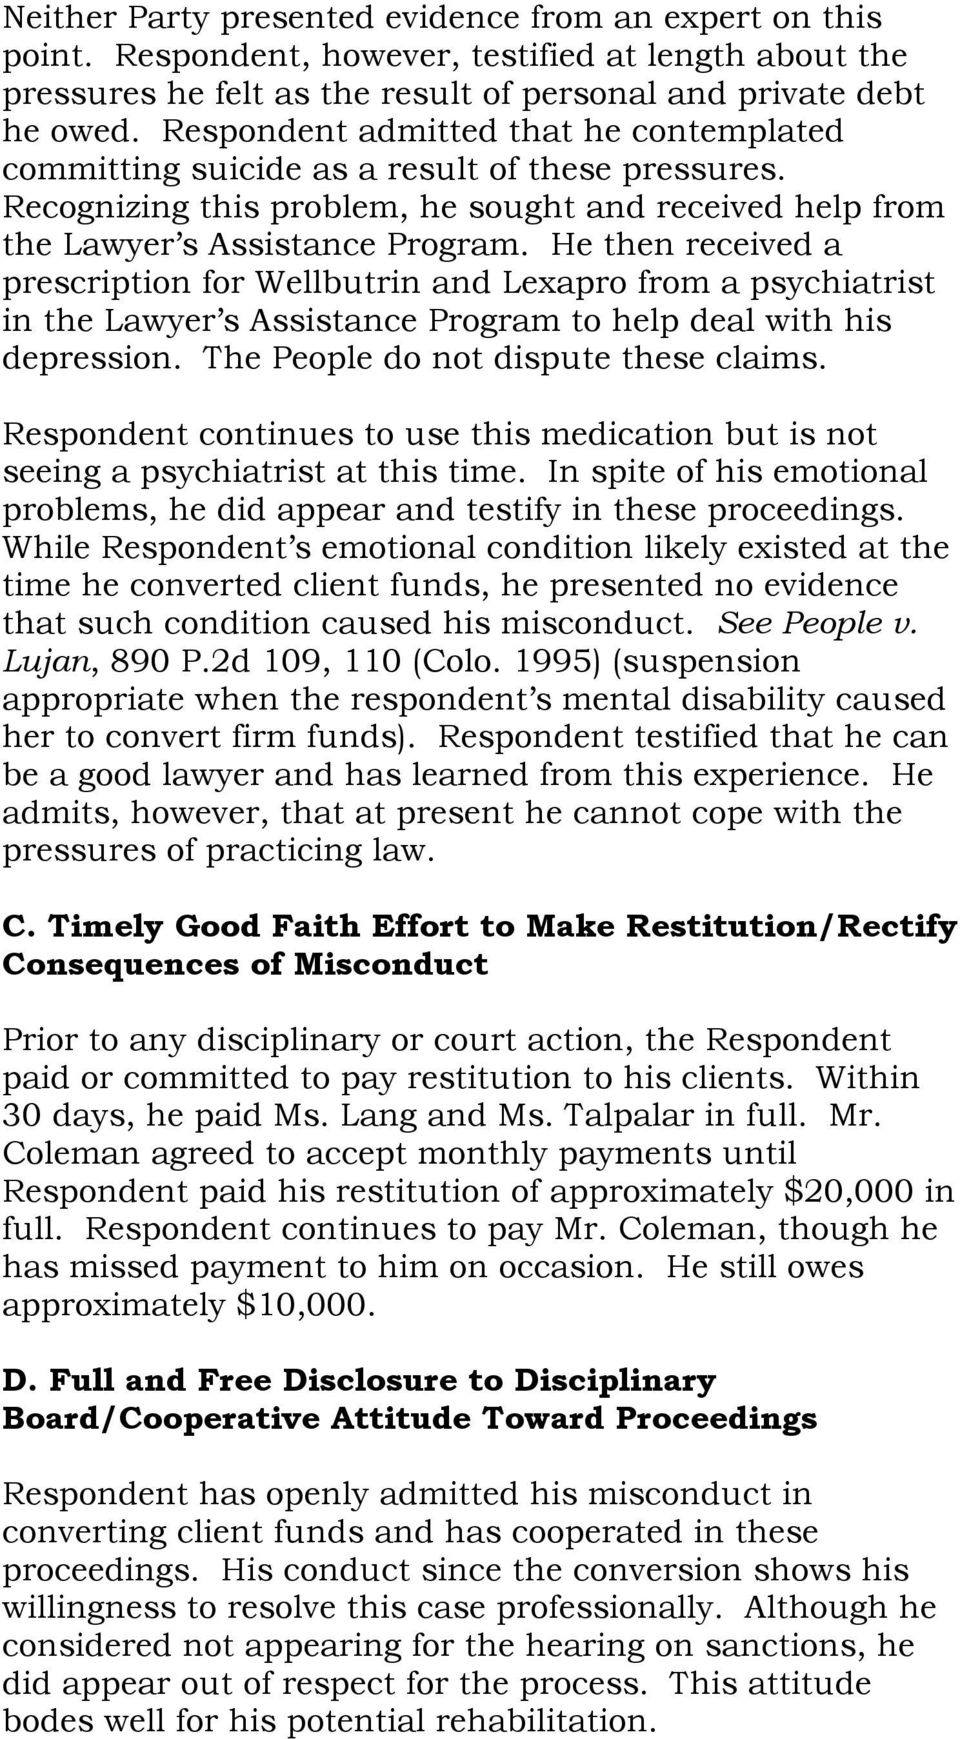 He then received a prescription for Wellbutrin and Lexapro from a psychiatrist in the Lawyer s Assistance Program to help deal with his depression. The People do not dispute these claims.